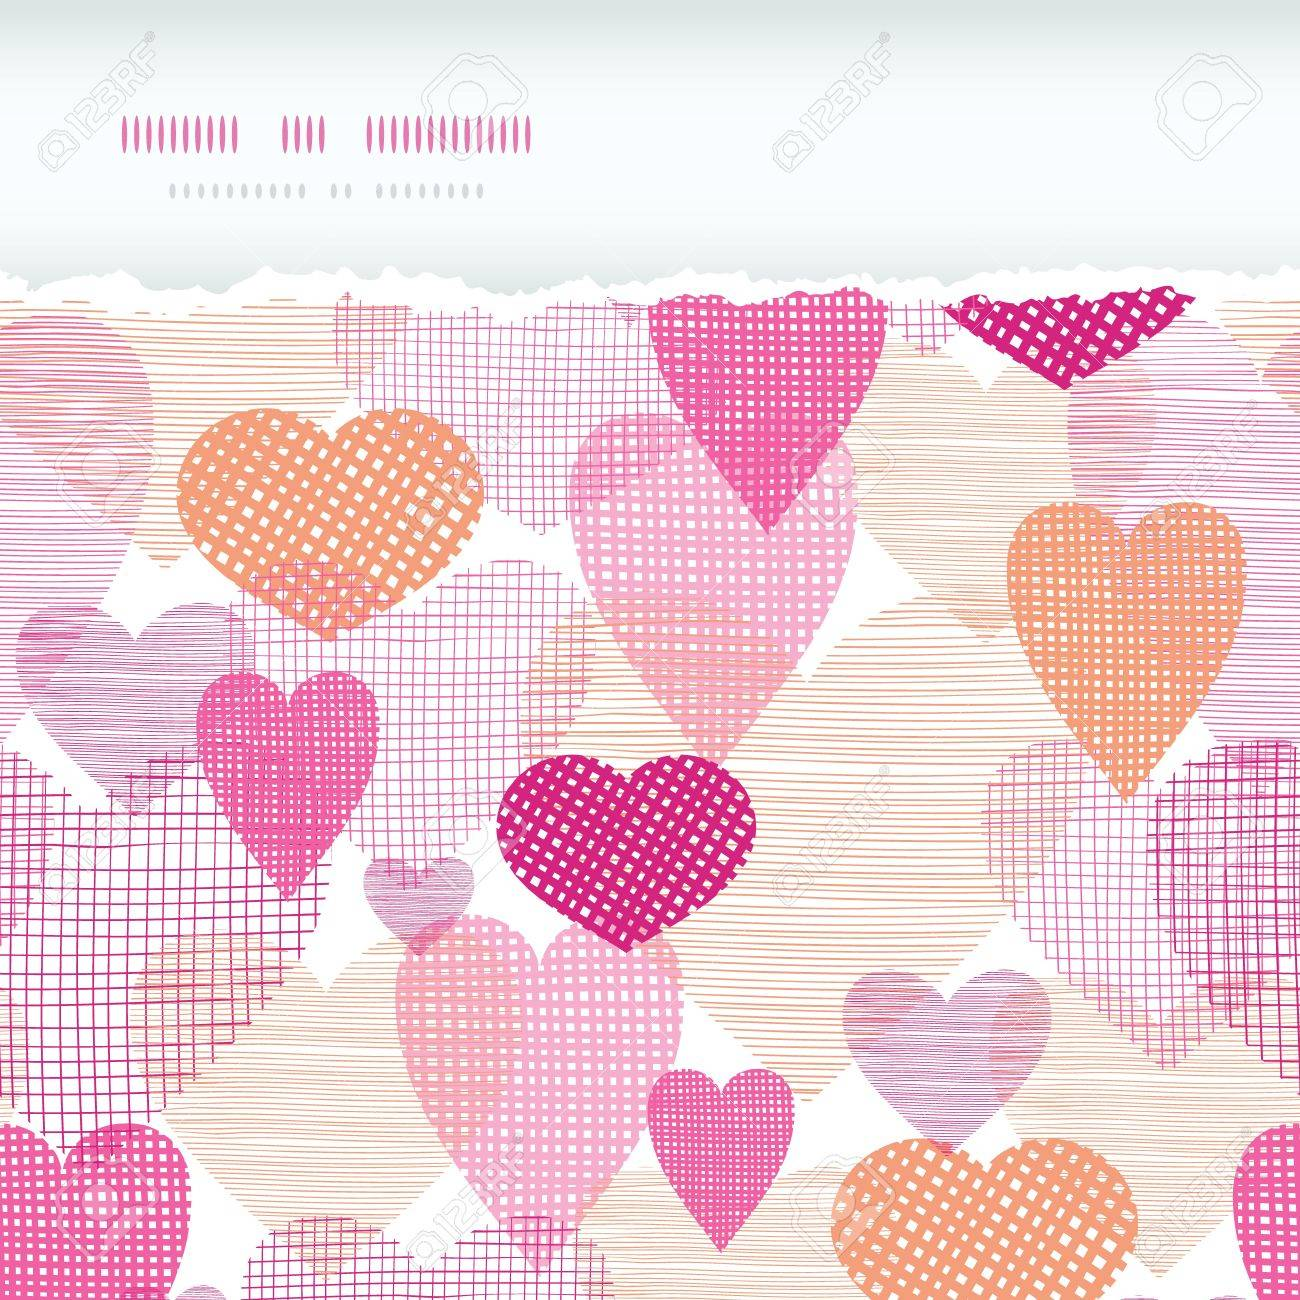 Textured Fabric Hearts Torn Horizontal Seamless Background Royalty Free Cliparts Vectors And Stock Illustration Image 17702970